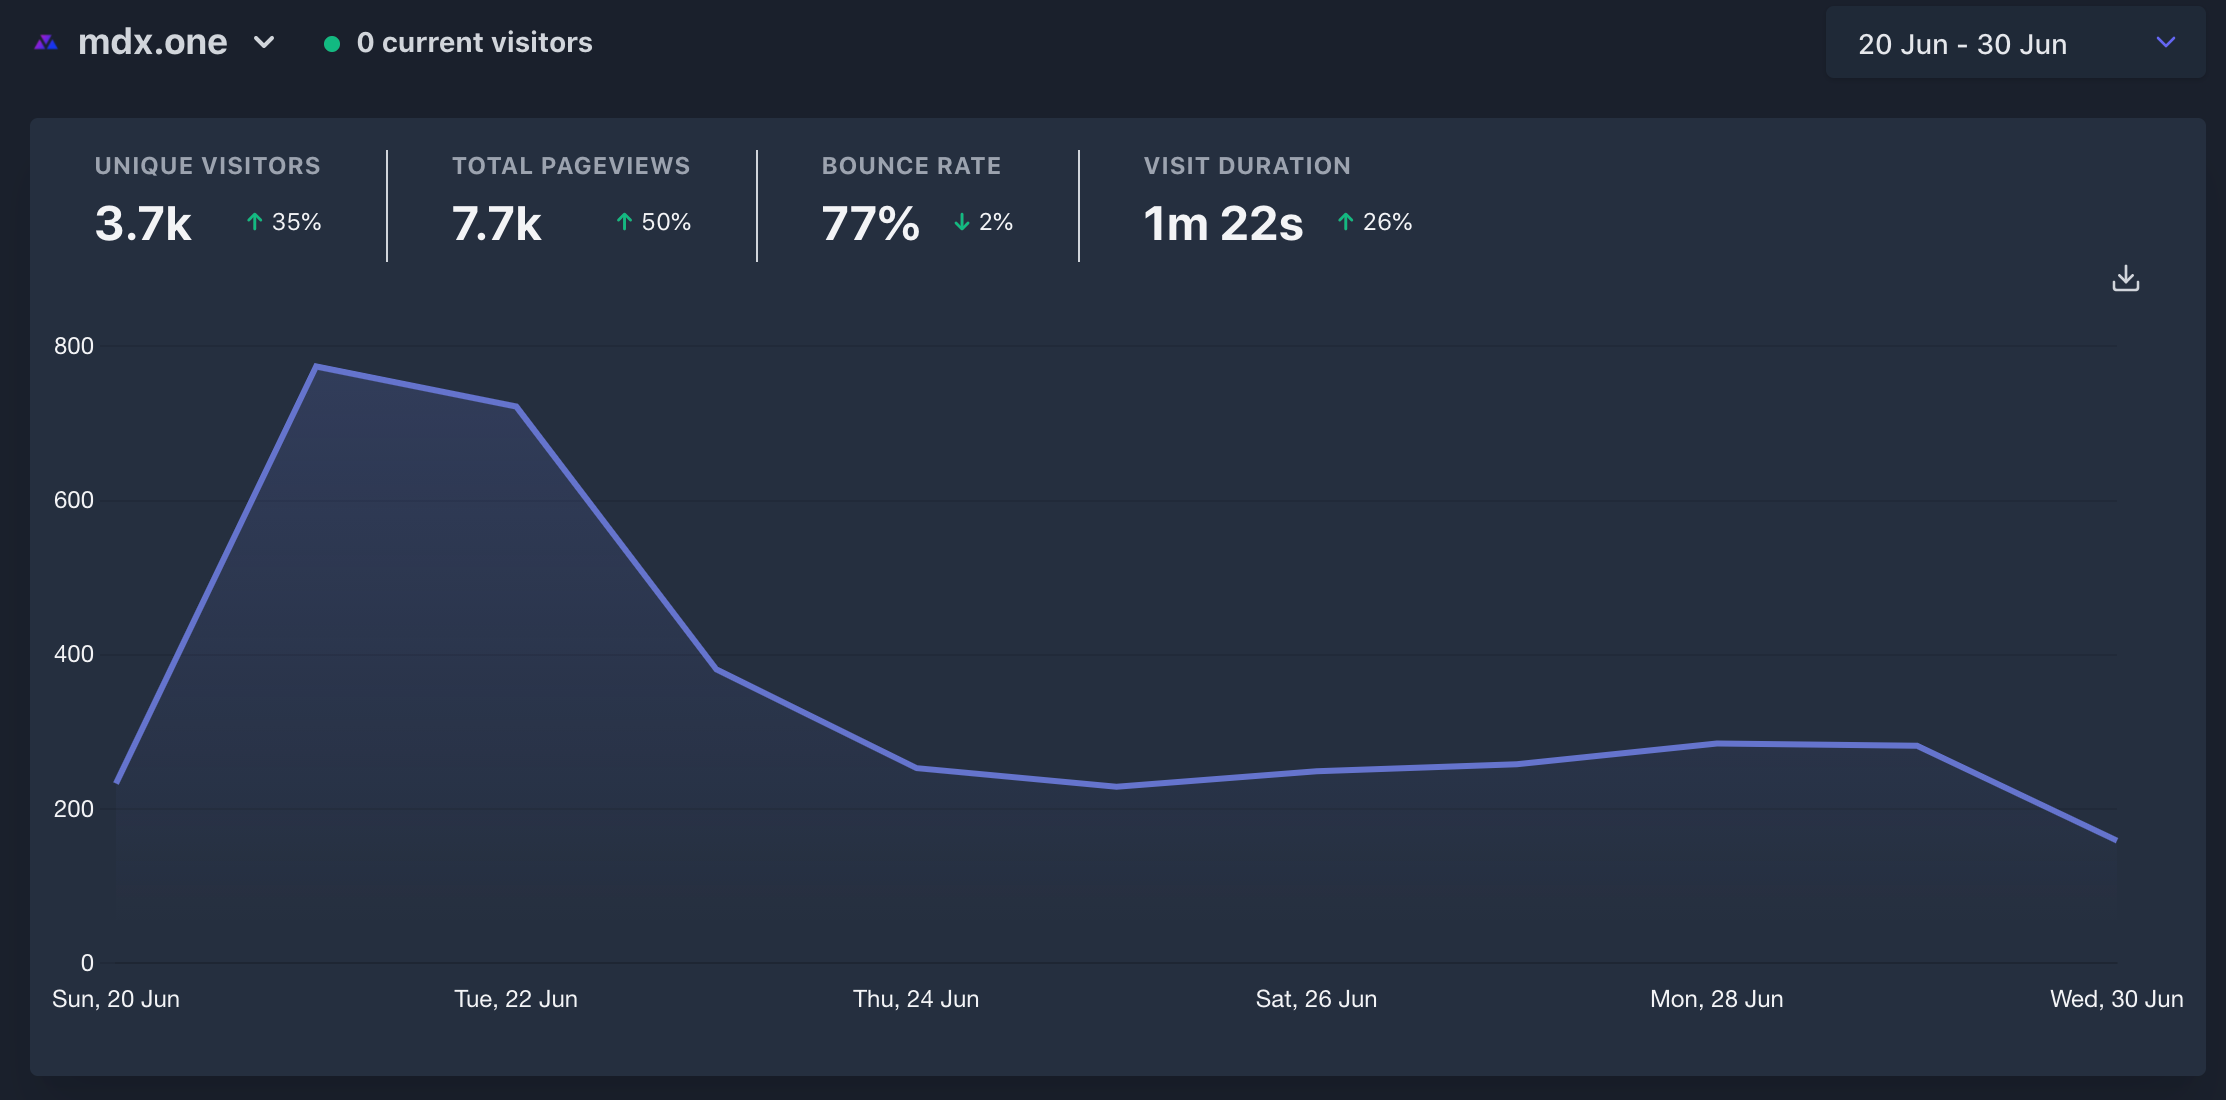 June analytics since the launch on 21st June.